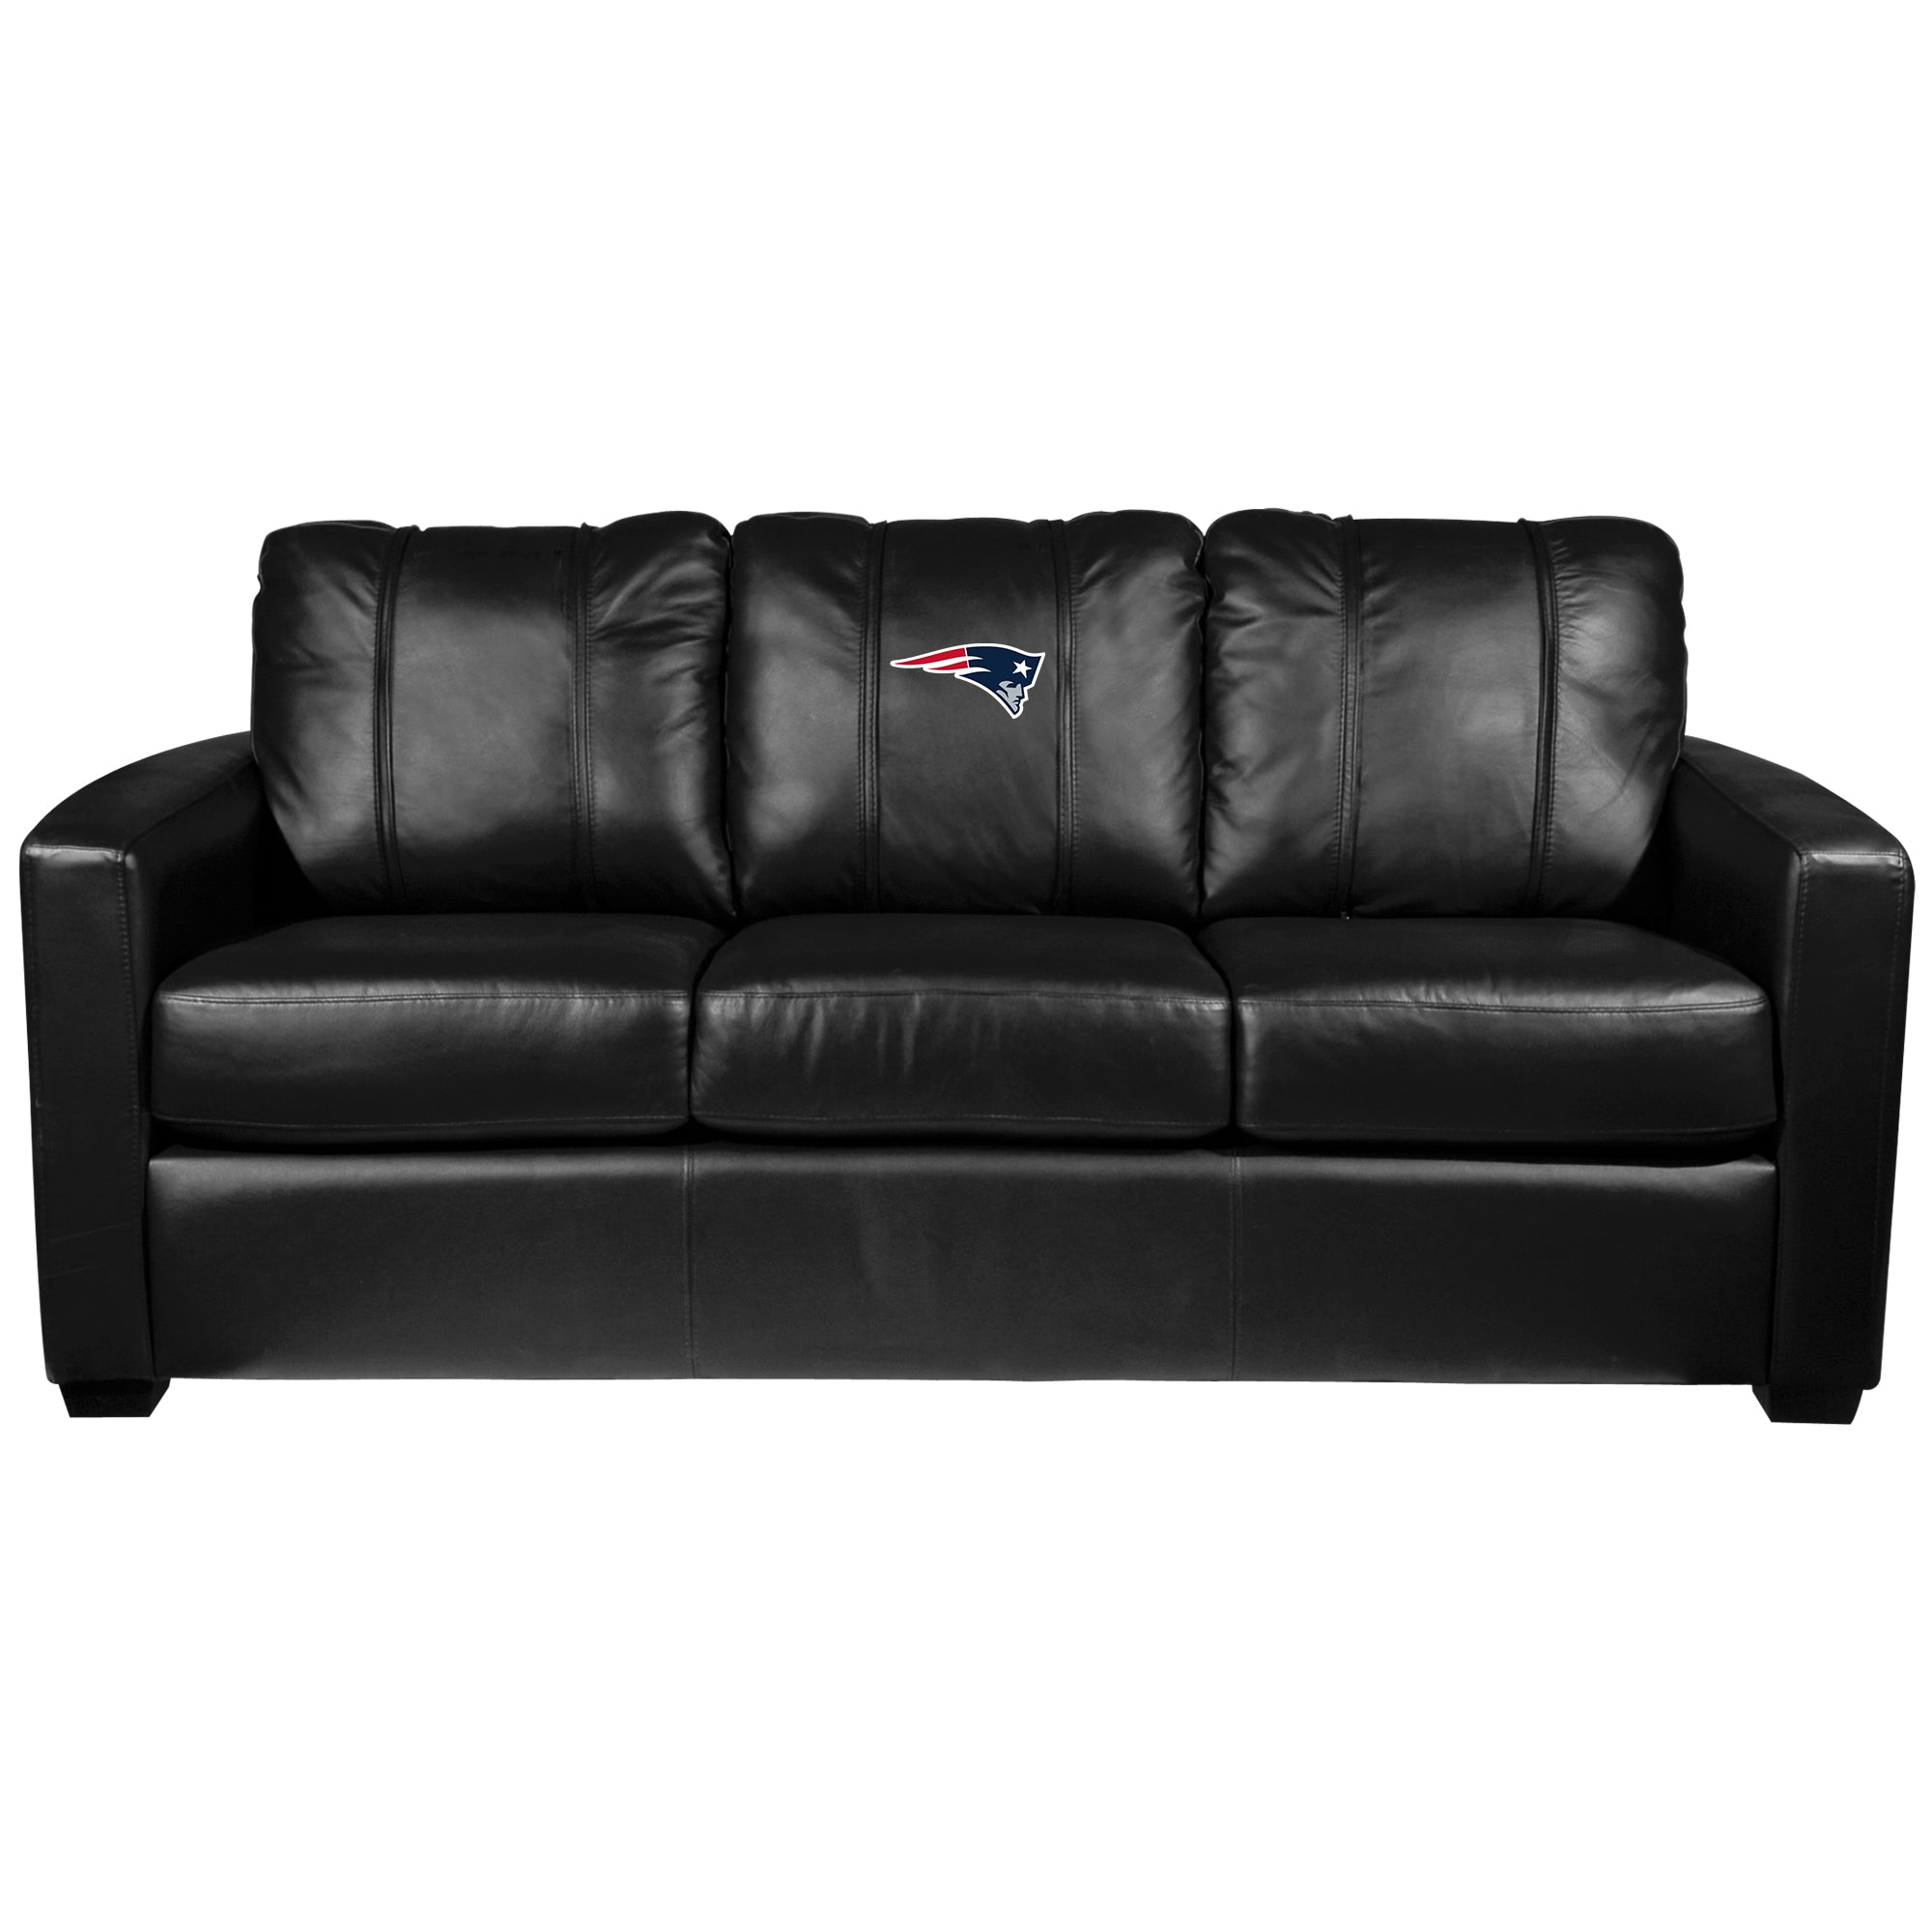 Silver Sofa with  New England Patriots Primary Logo